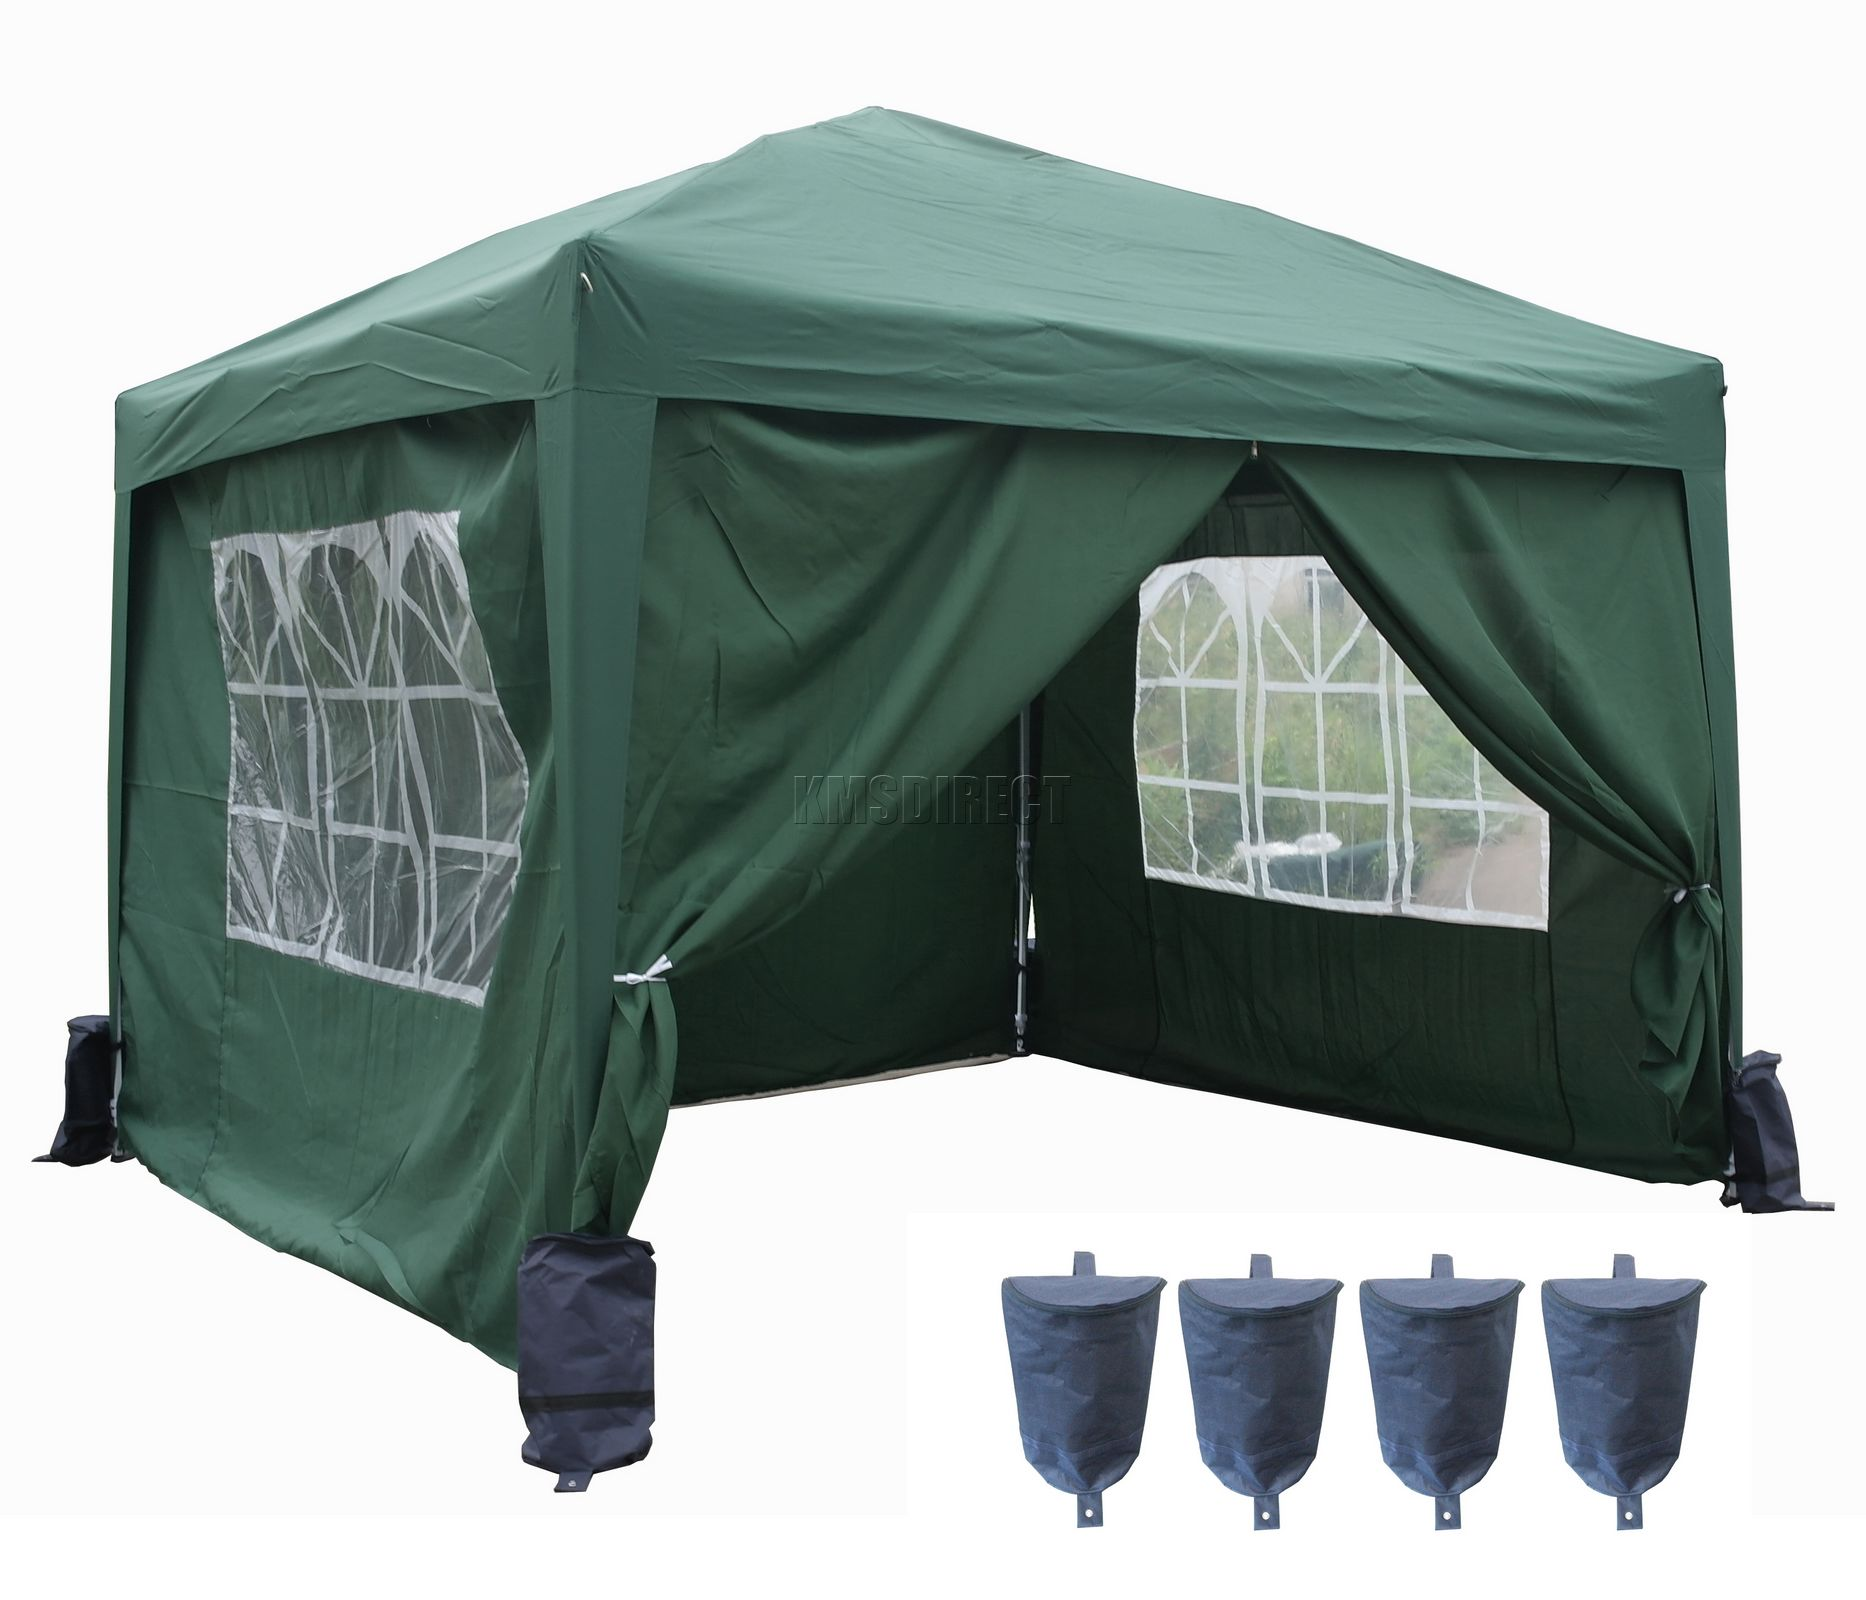 3m X Pop Up Gazebo Waterproof Canopy